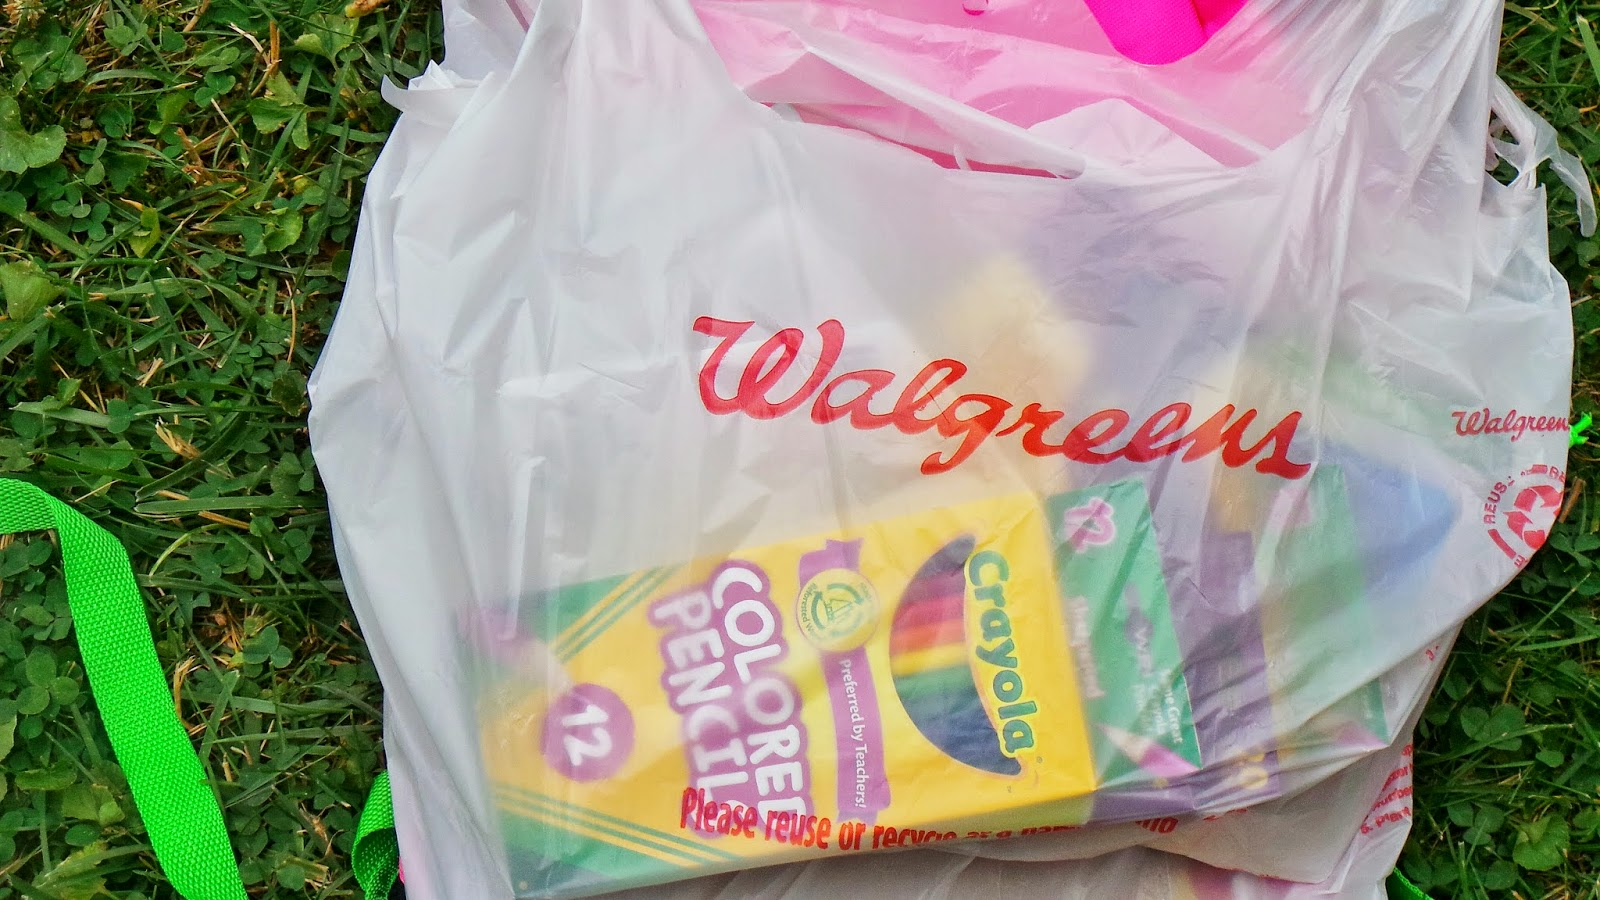 #shop #cbias #paperlesscoupons #walgreens #collectivebias #backtoschool